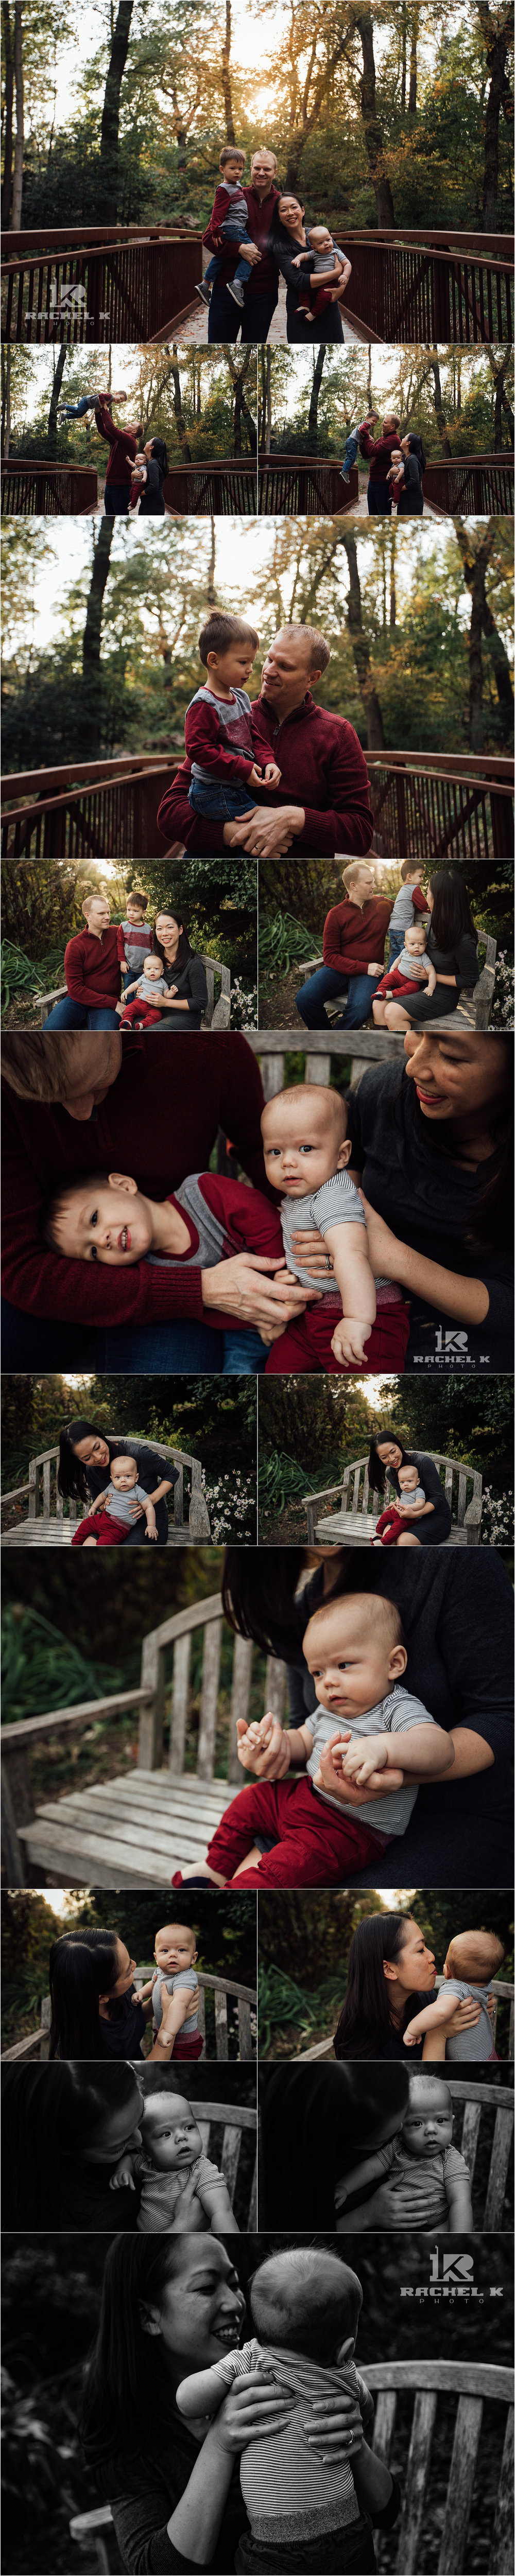 Fairfax Virginia lifestyle family session at Green Springs Gardens by Rachel K Photo